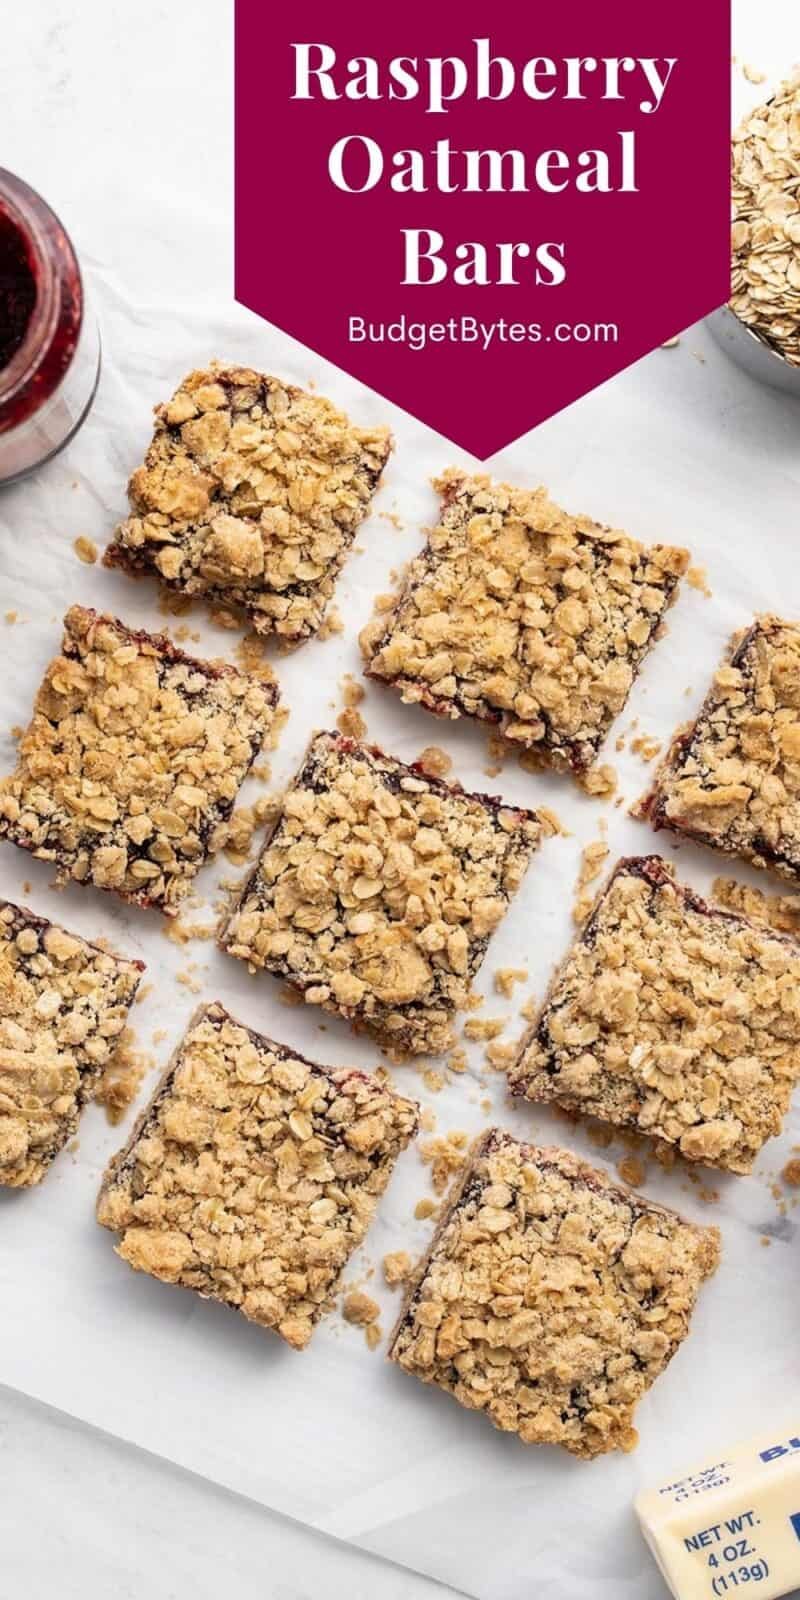 Overhead view of cut raspberry oatmeal bars, title text at the top